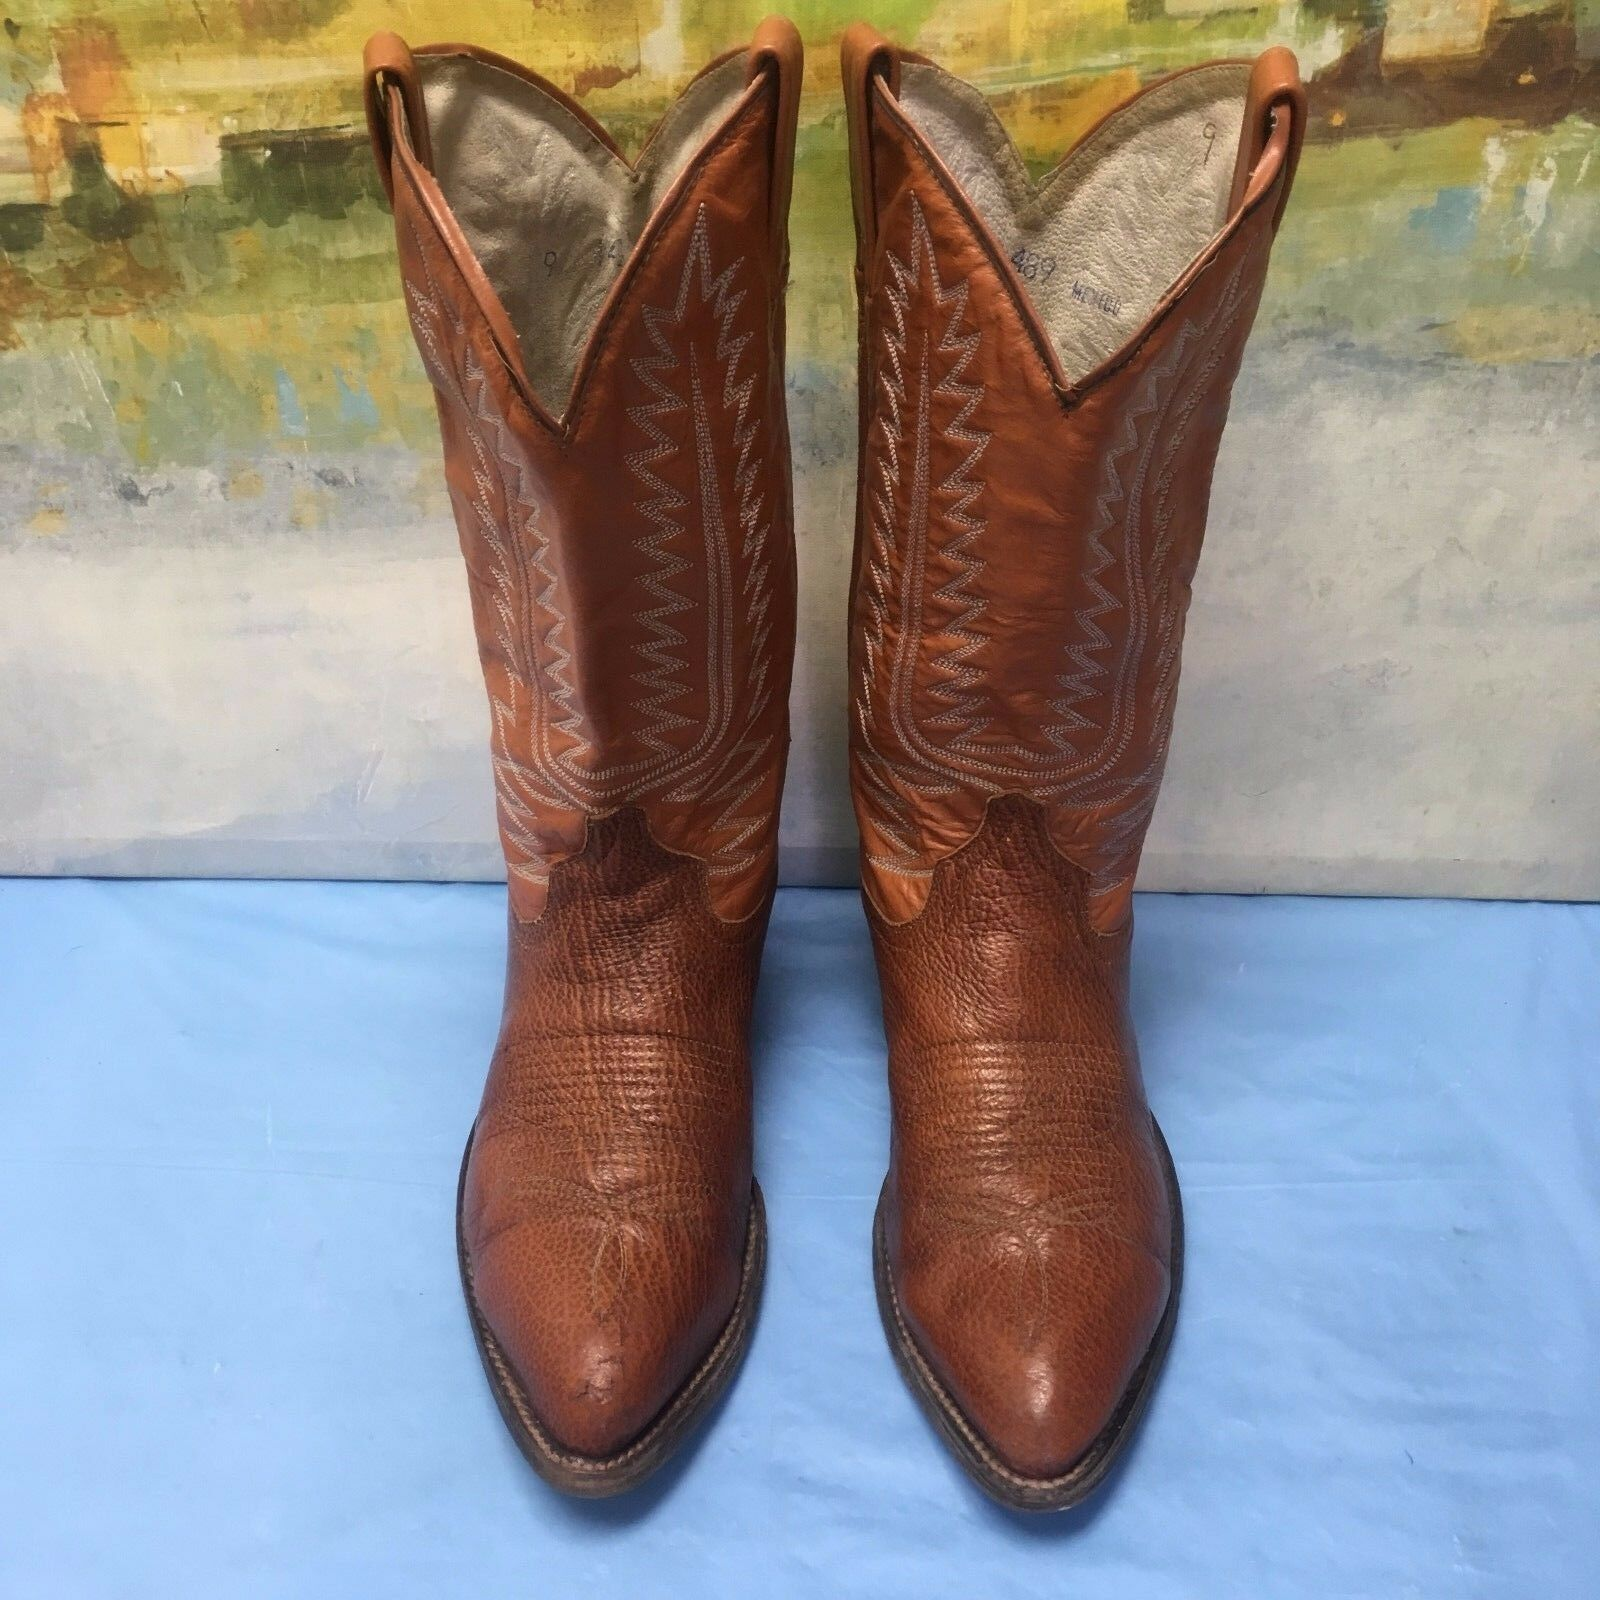 Cowtown Brown Leather Cowboy Western Boots Size 9